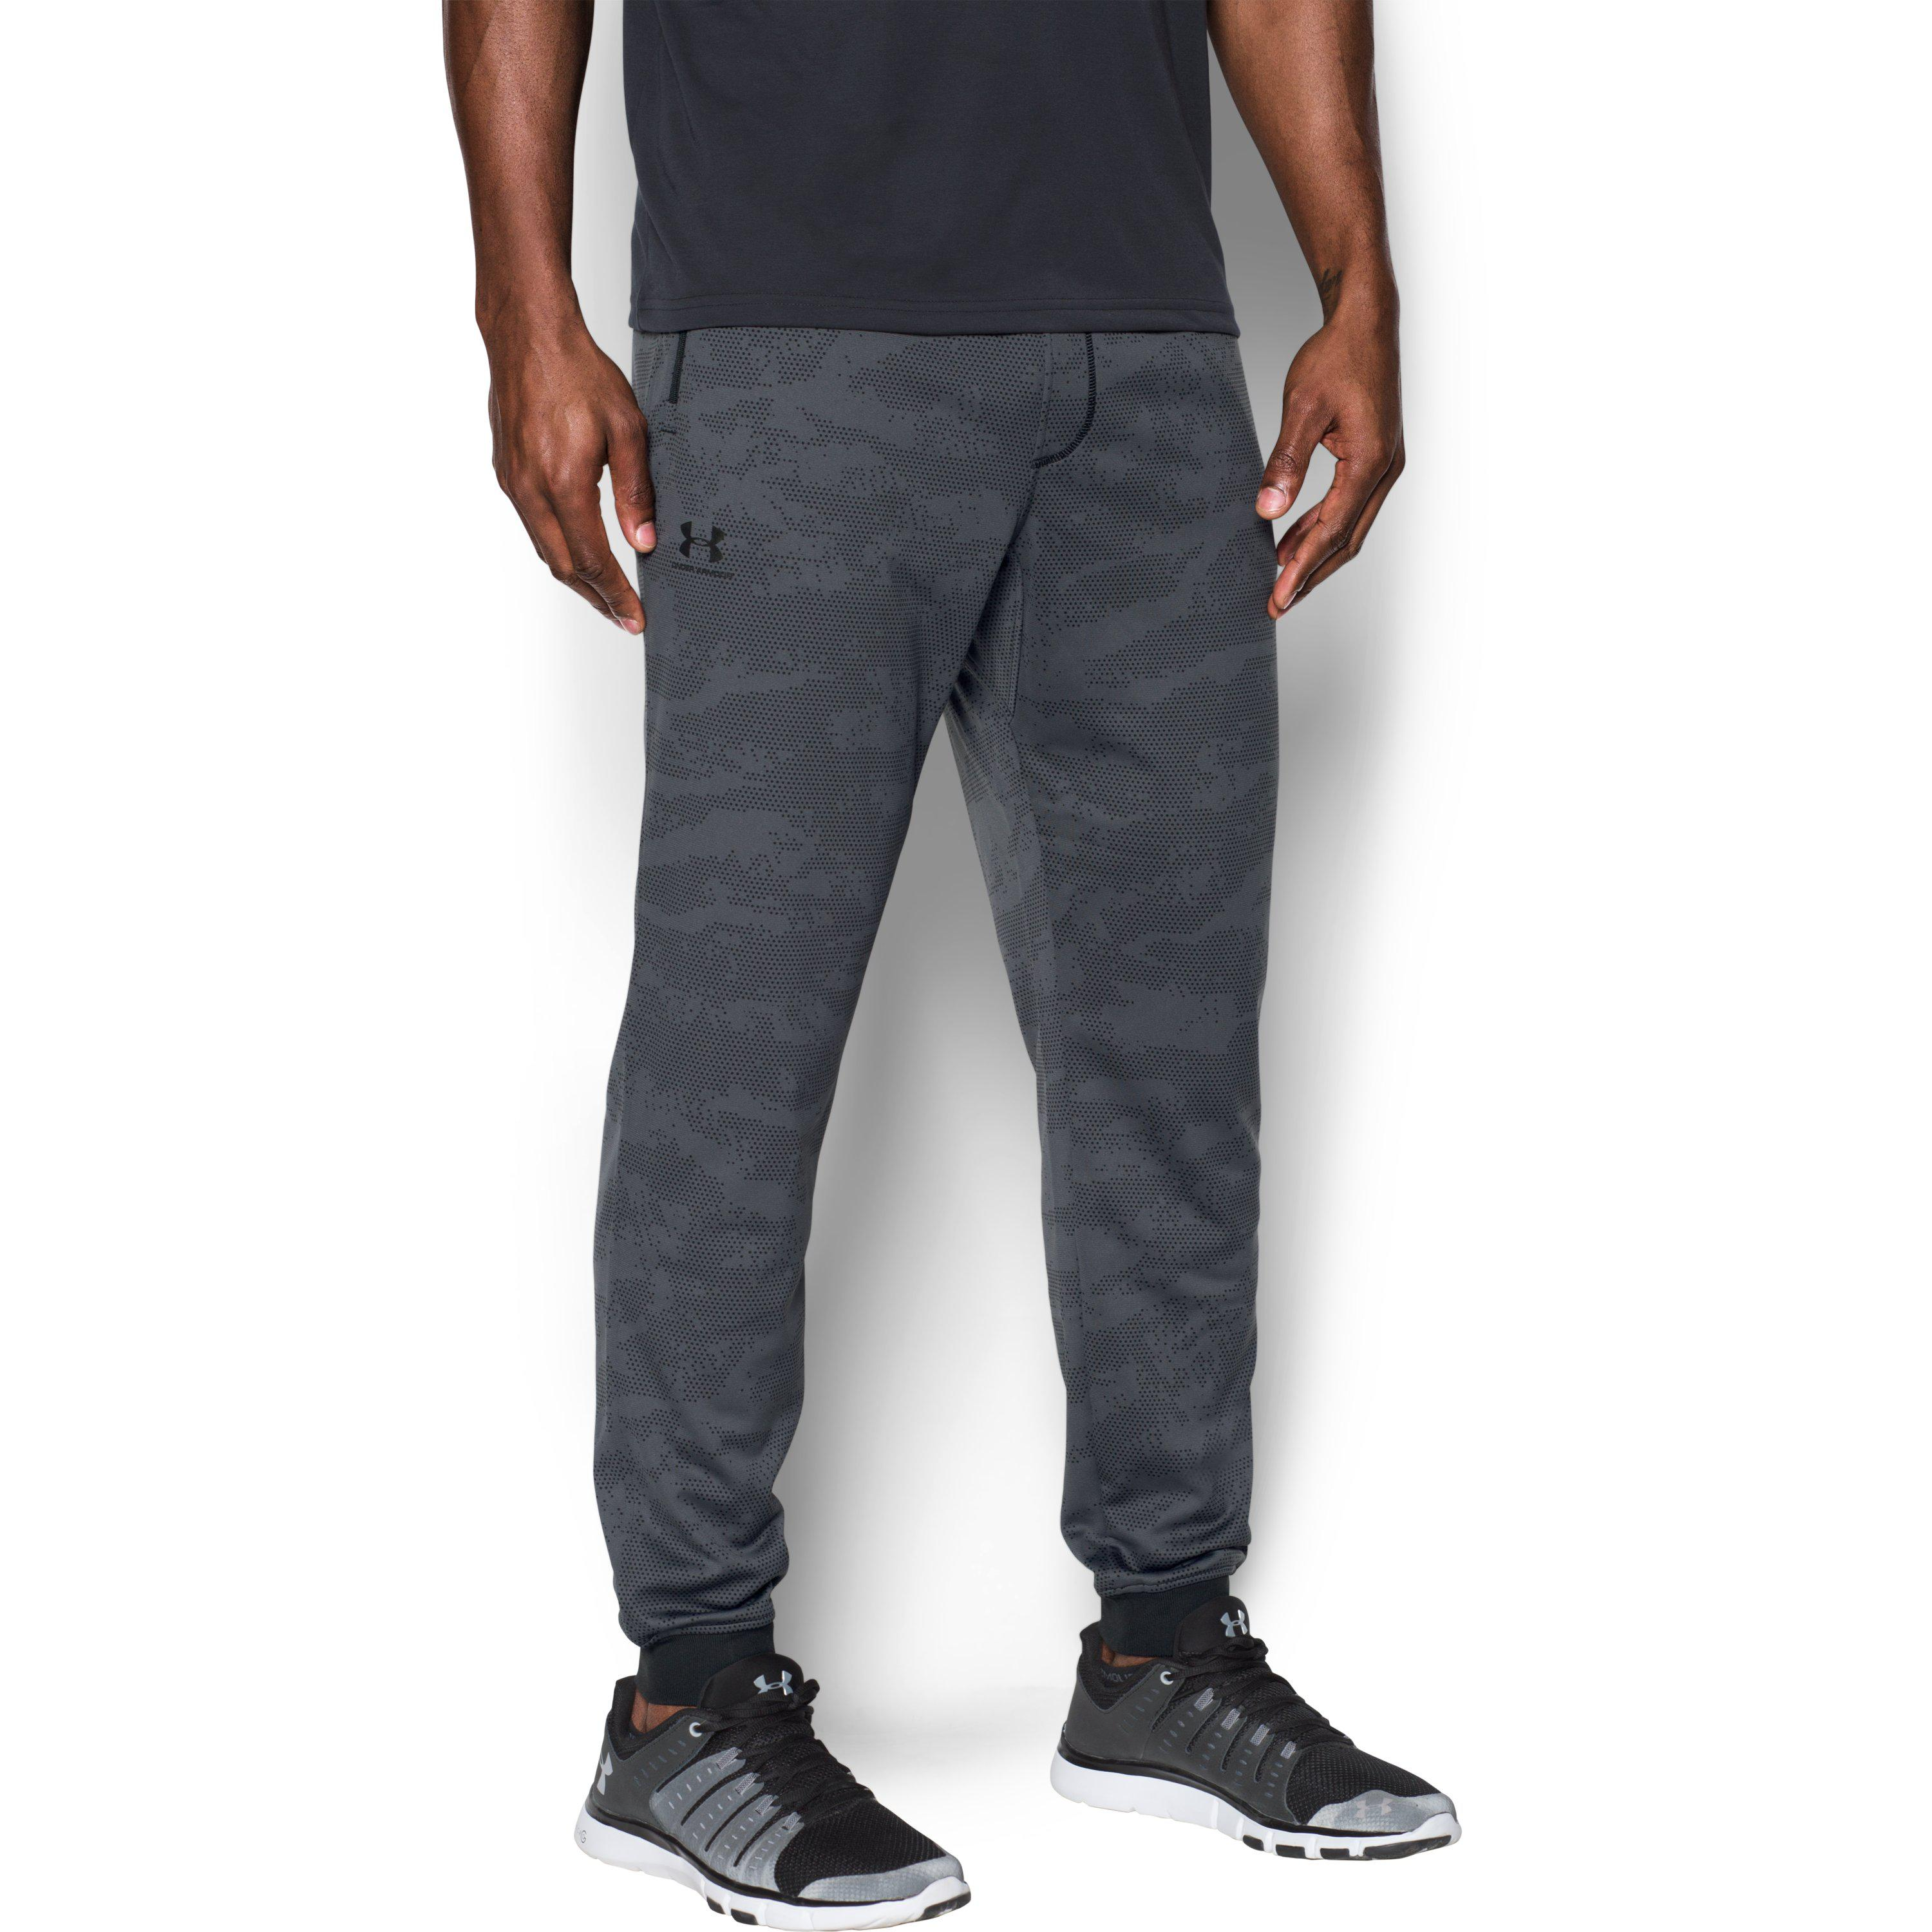 New Under Armour UA Men/'s Sportstyle Joggers Pants Green